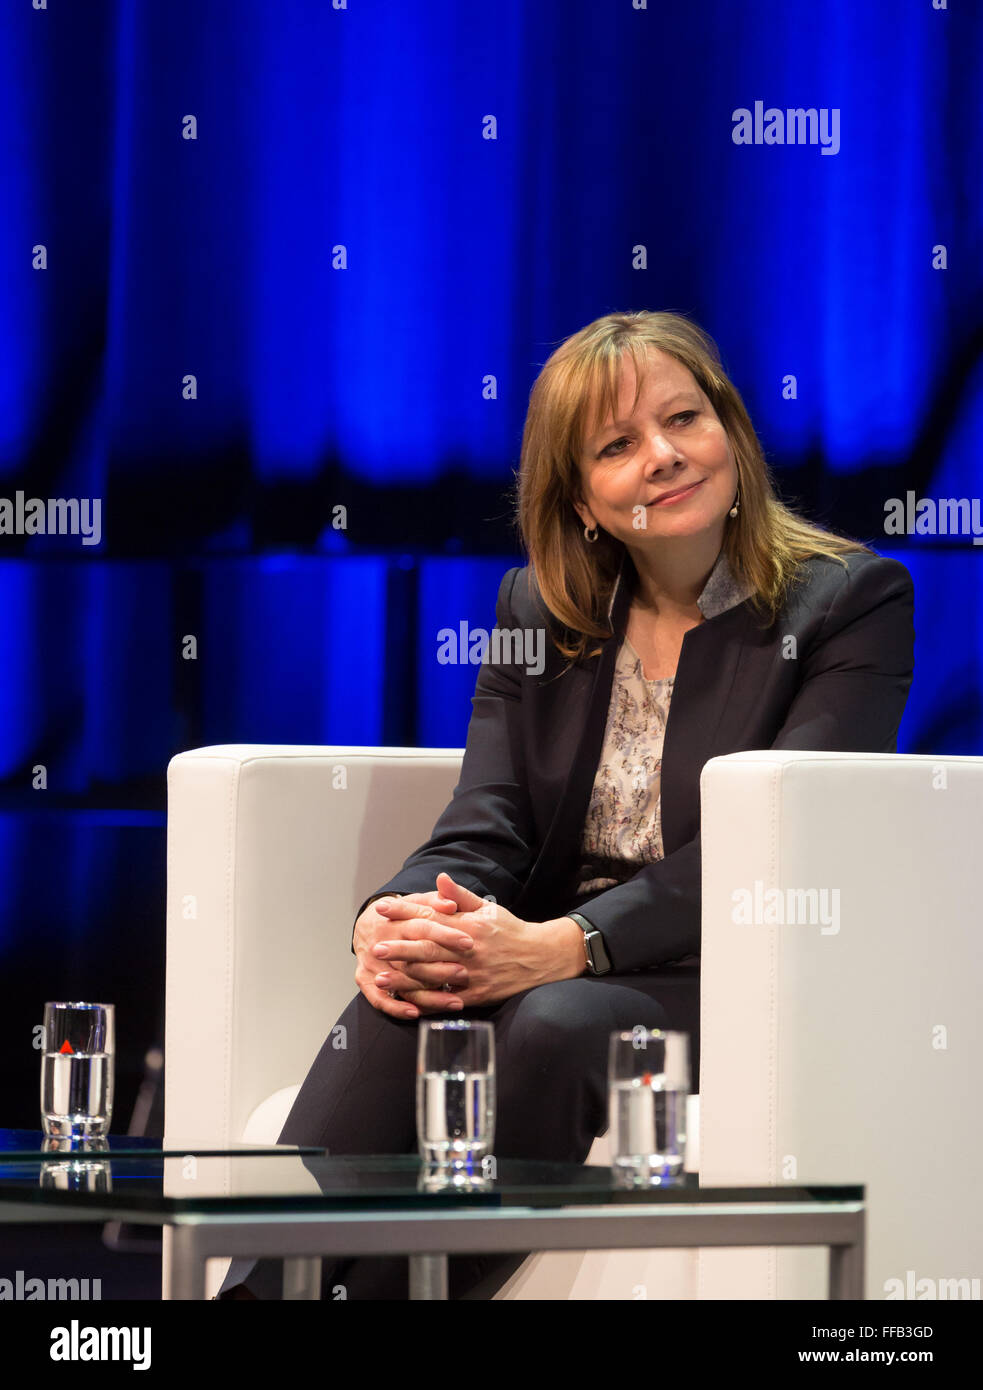 Bochum, Germany. 11th February, 2016. Mary Barra, CEO General Motors, CAR symposium, automotive experts meeting, - Stock Image